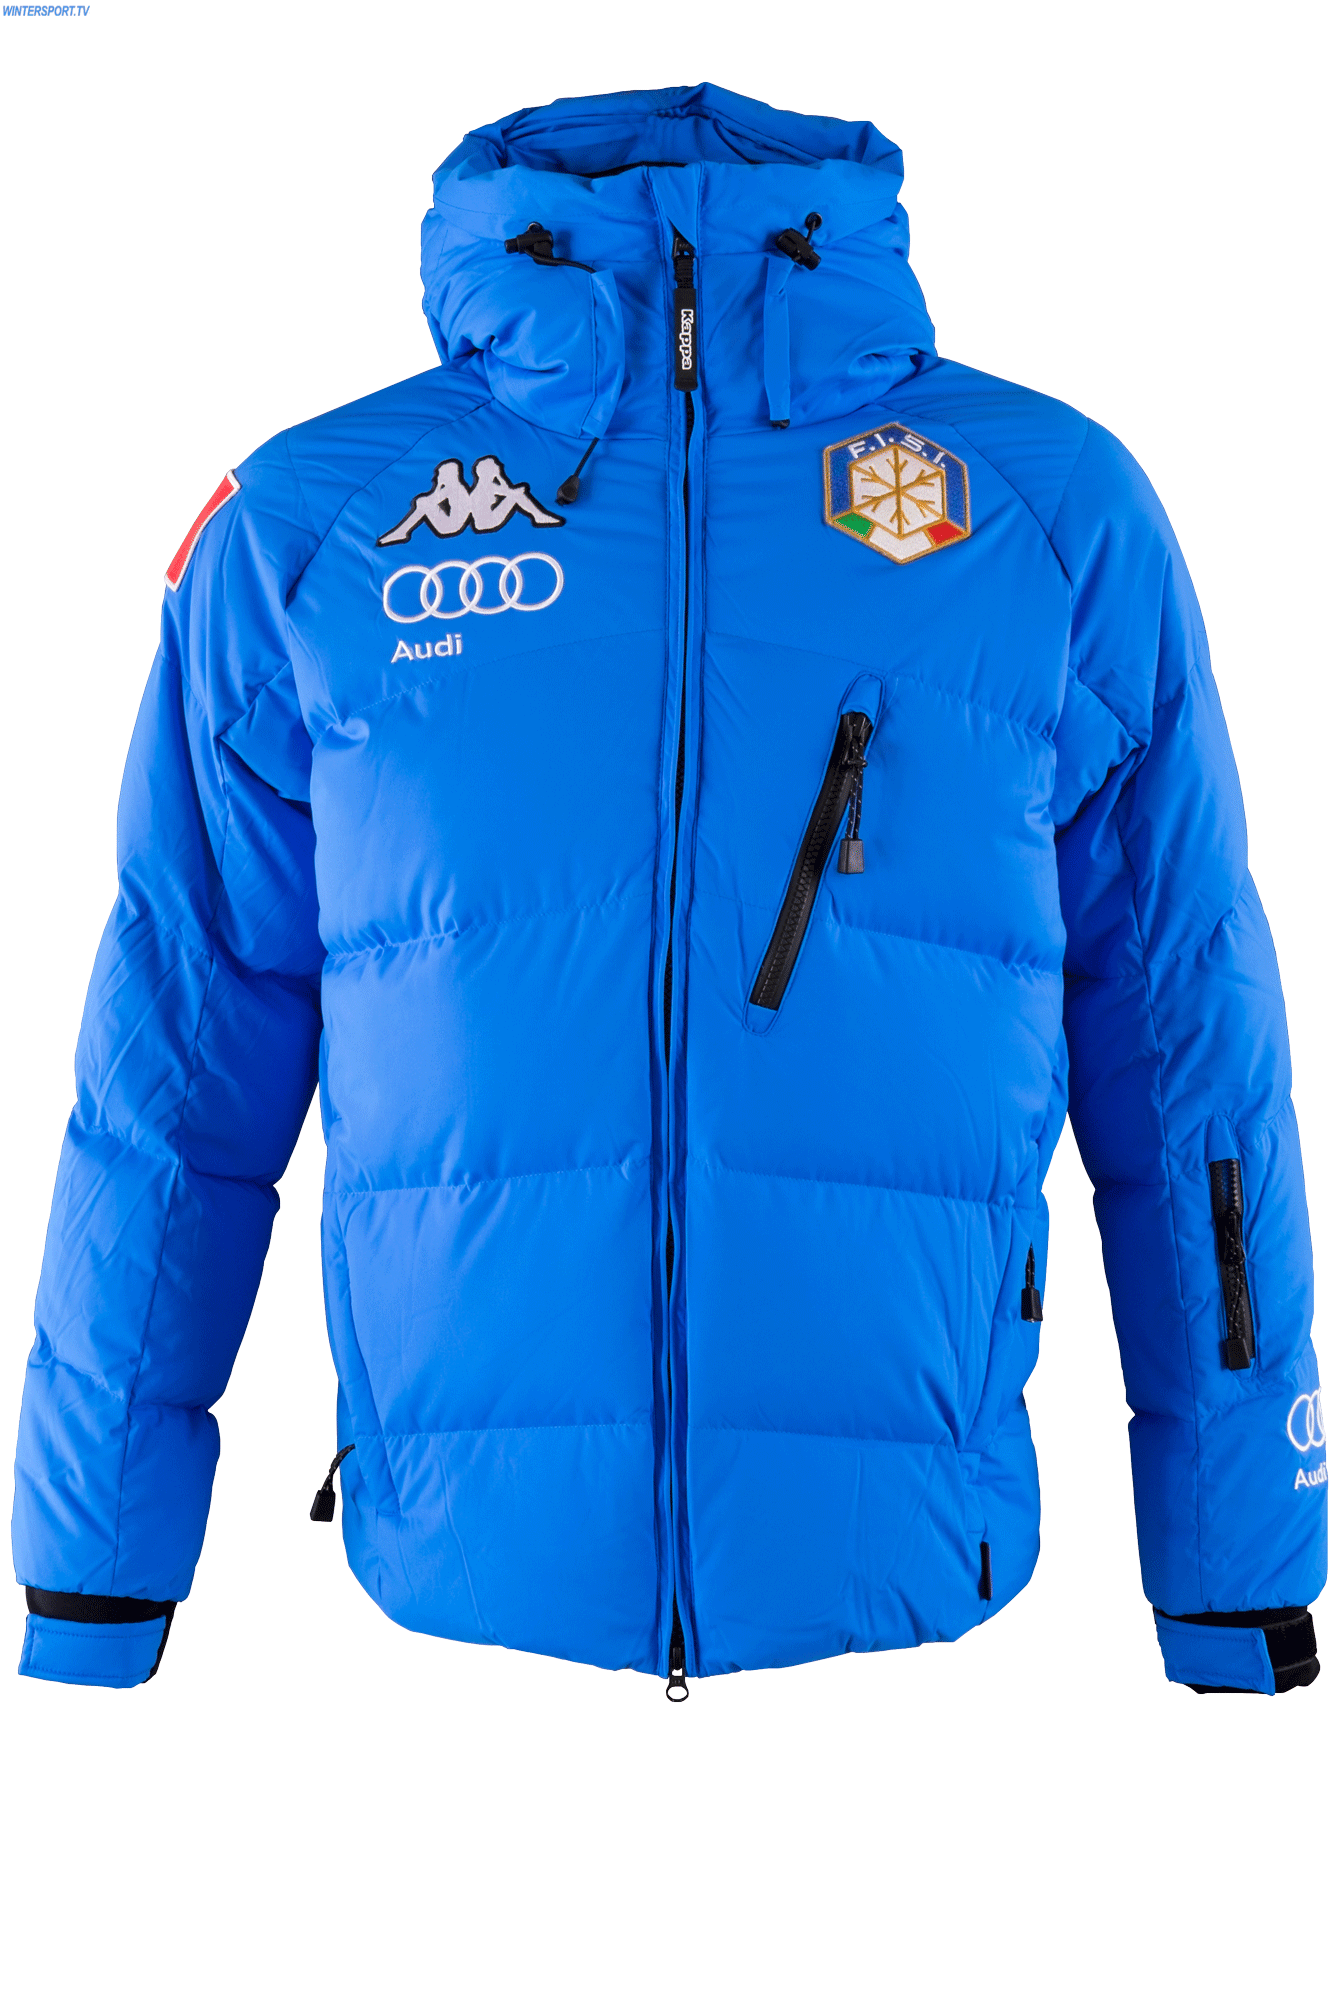 official photos 27027 f5e0b Kappa Men Italian Alpine Team FIS Down Jacket - Azzurro ...